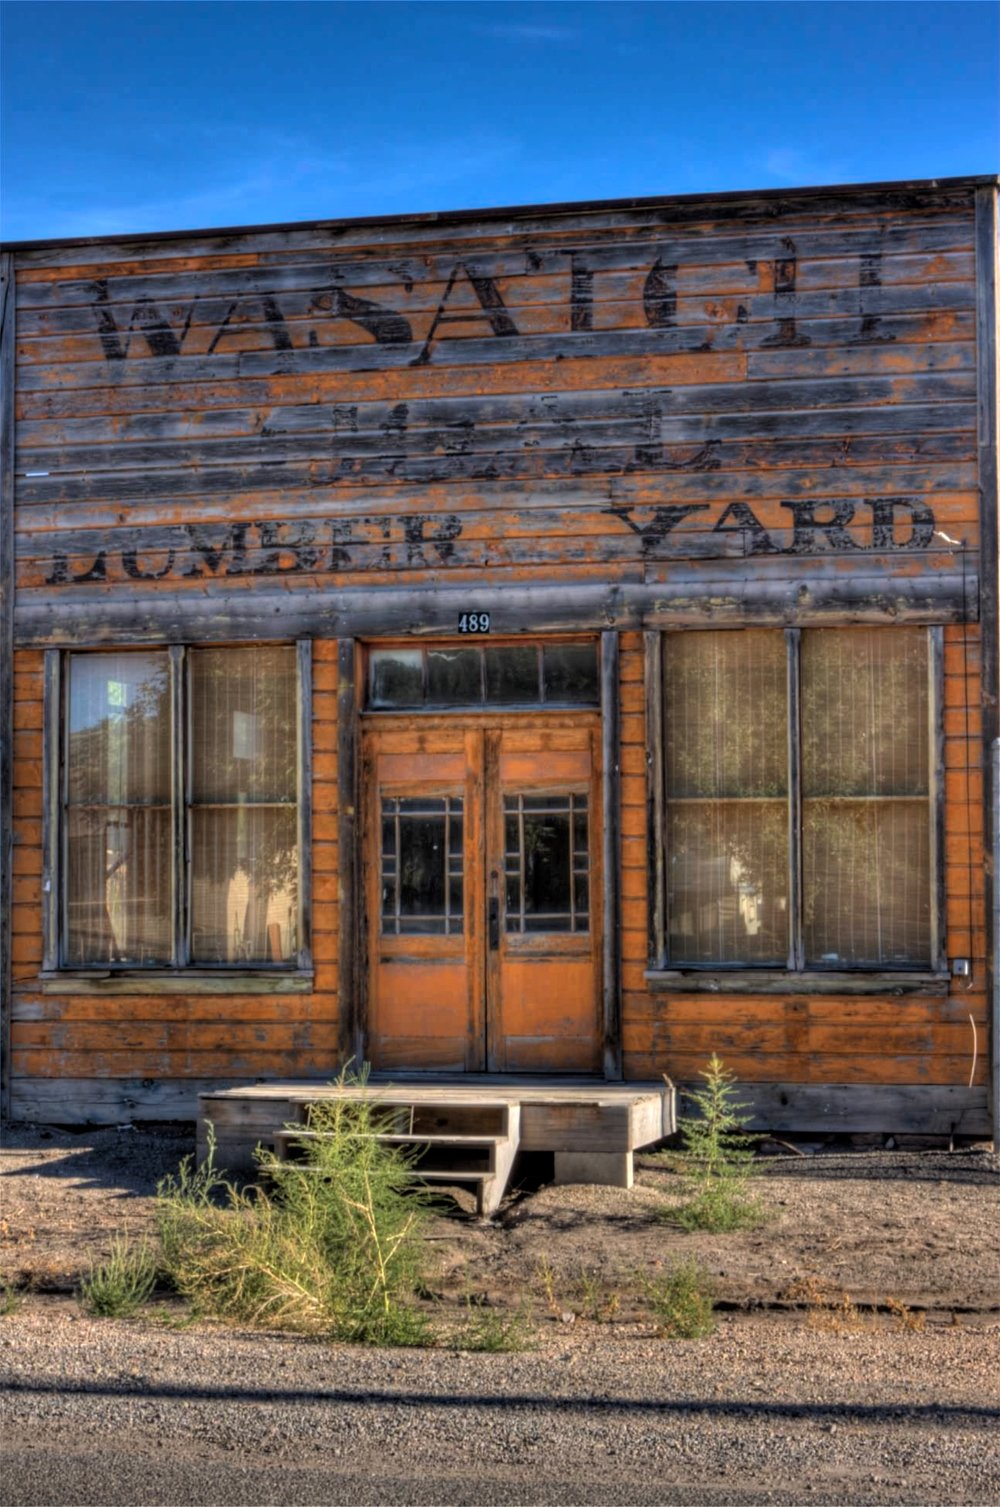 Wasatch Lumber Yard, Herber City, UT.jpg